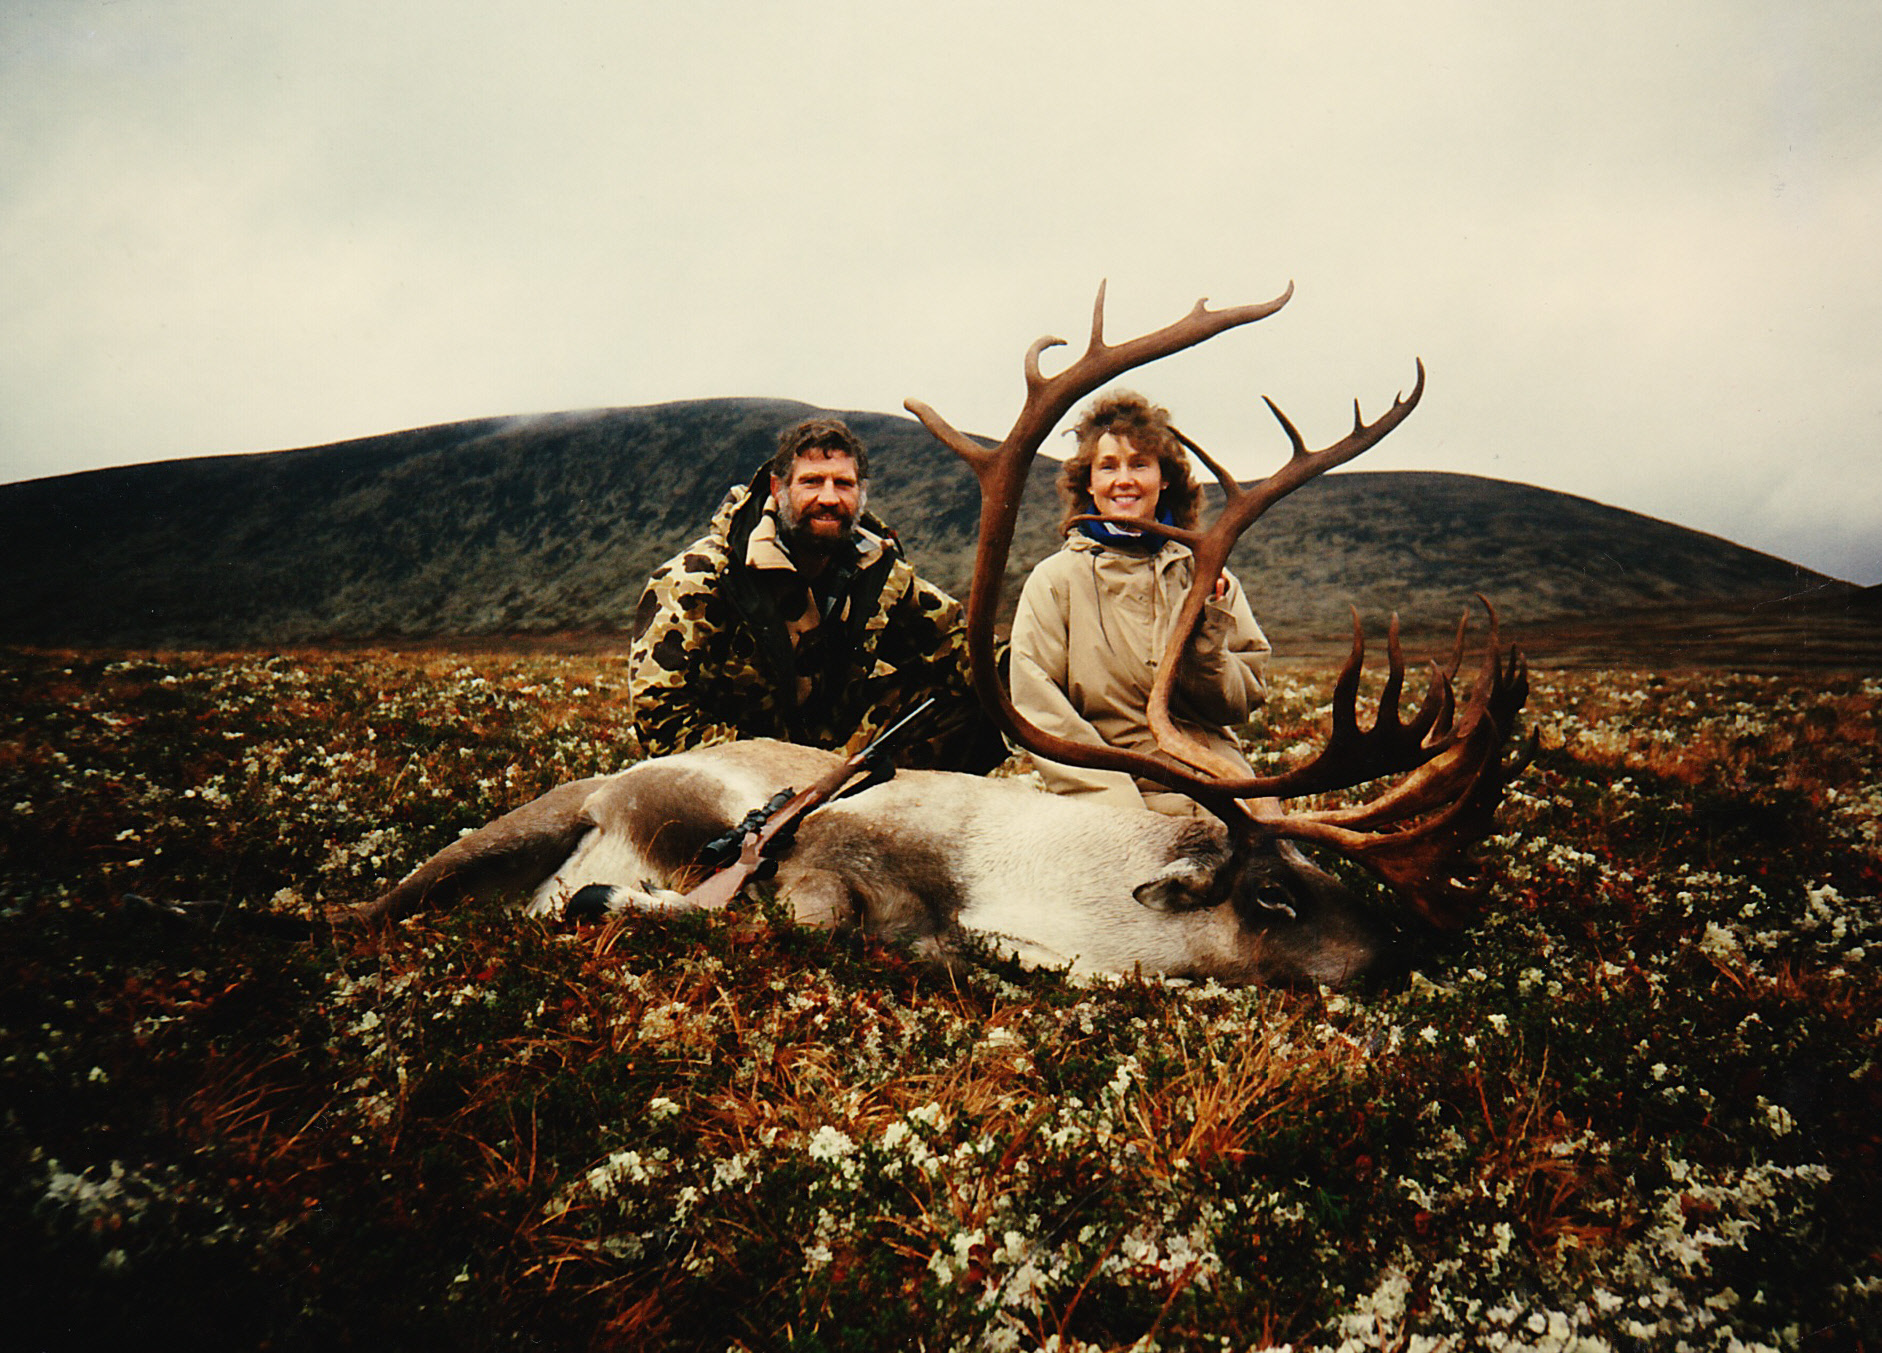 One of my favorite pictures of Karen and me. One happy hunting day!